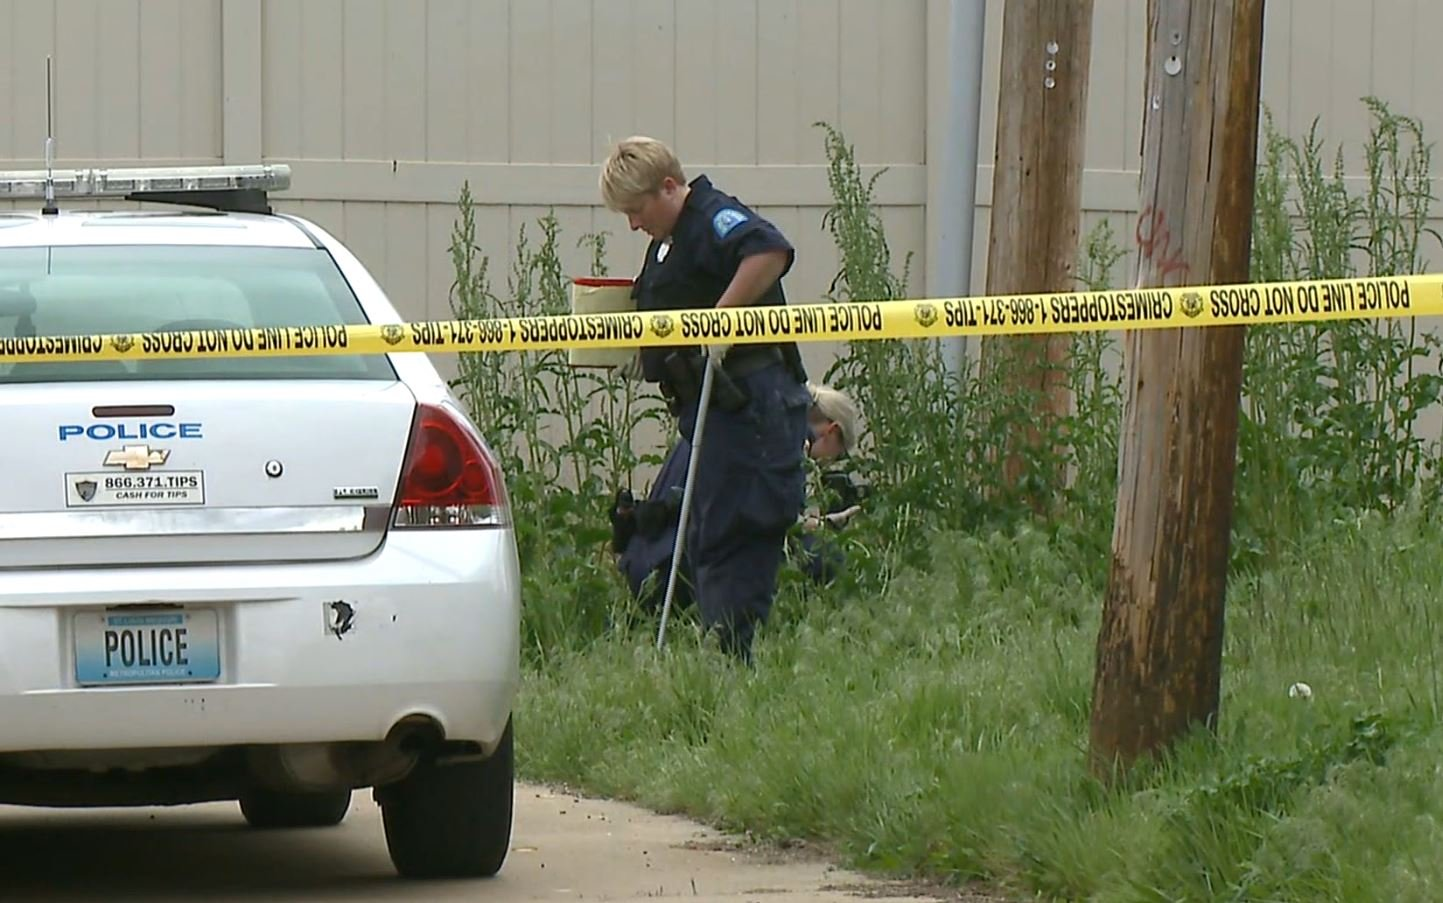 Investigators probe scene of fatal officer-involved shooting in North St. Louis Tuesday (KMOV-TV)